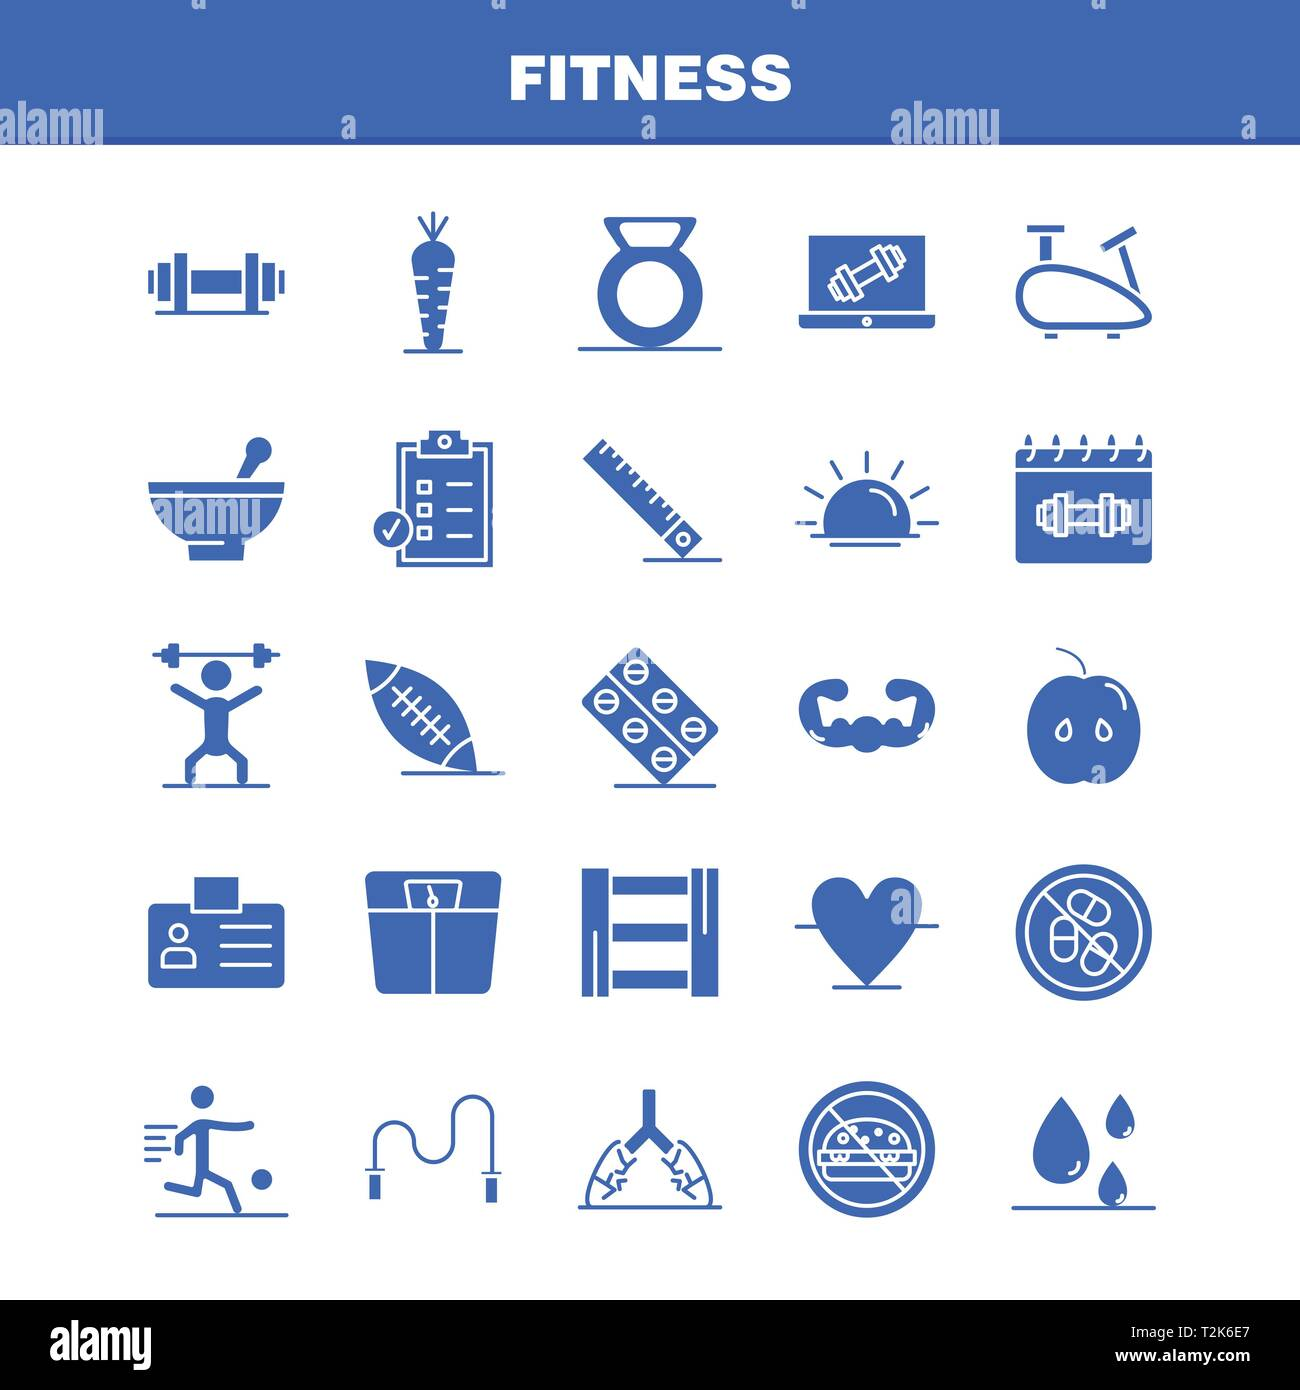 Fitness Solid Glyph Icons Set For Infographics, Mobile UX/UI